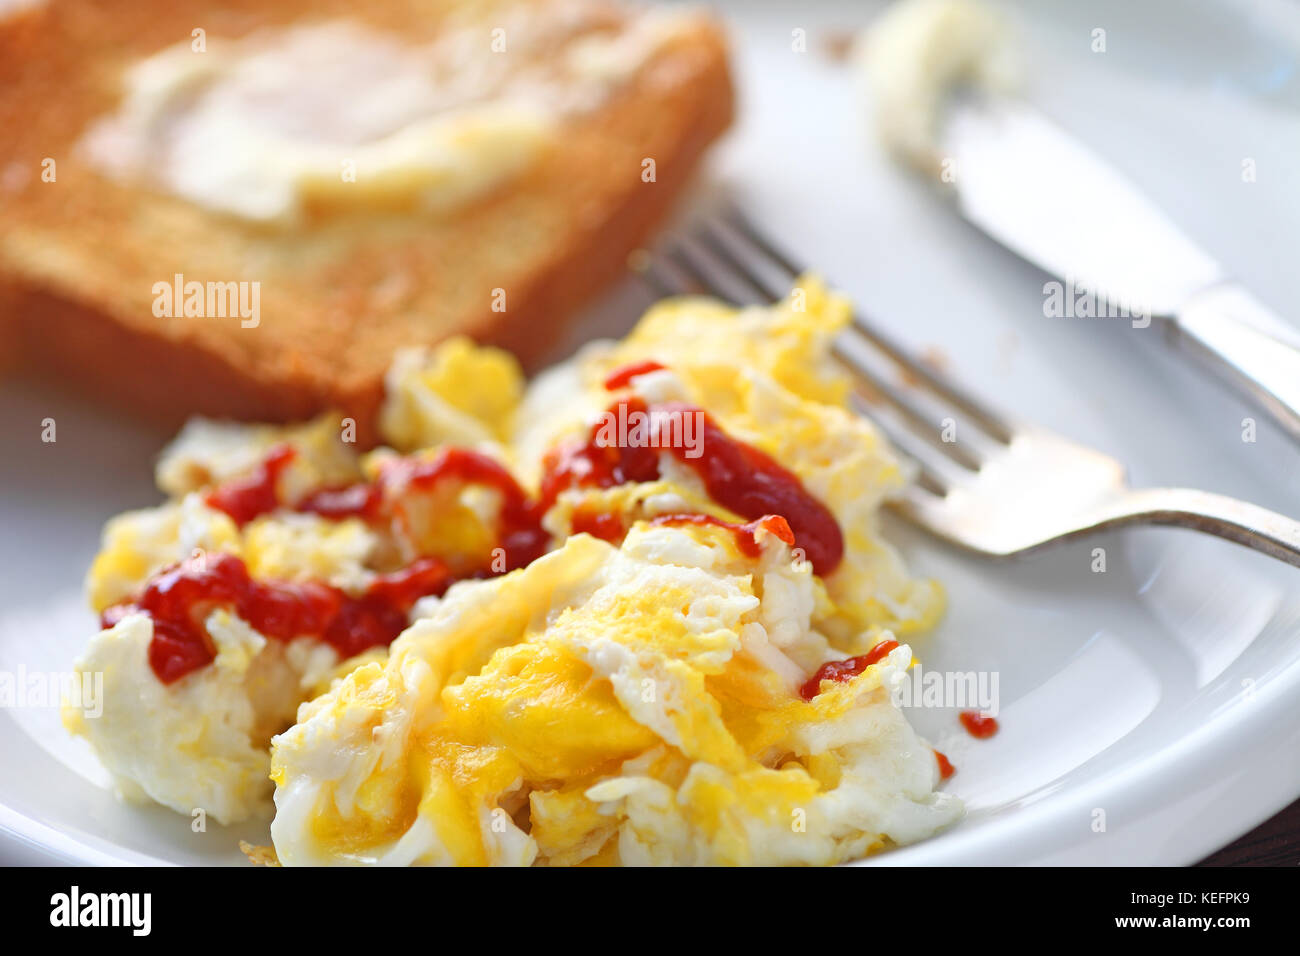 Scrambled eggs with Sriracha hot chili sauce and buttered toast - Stock Image